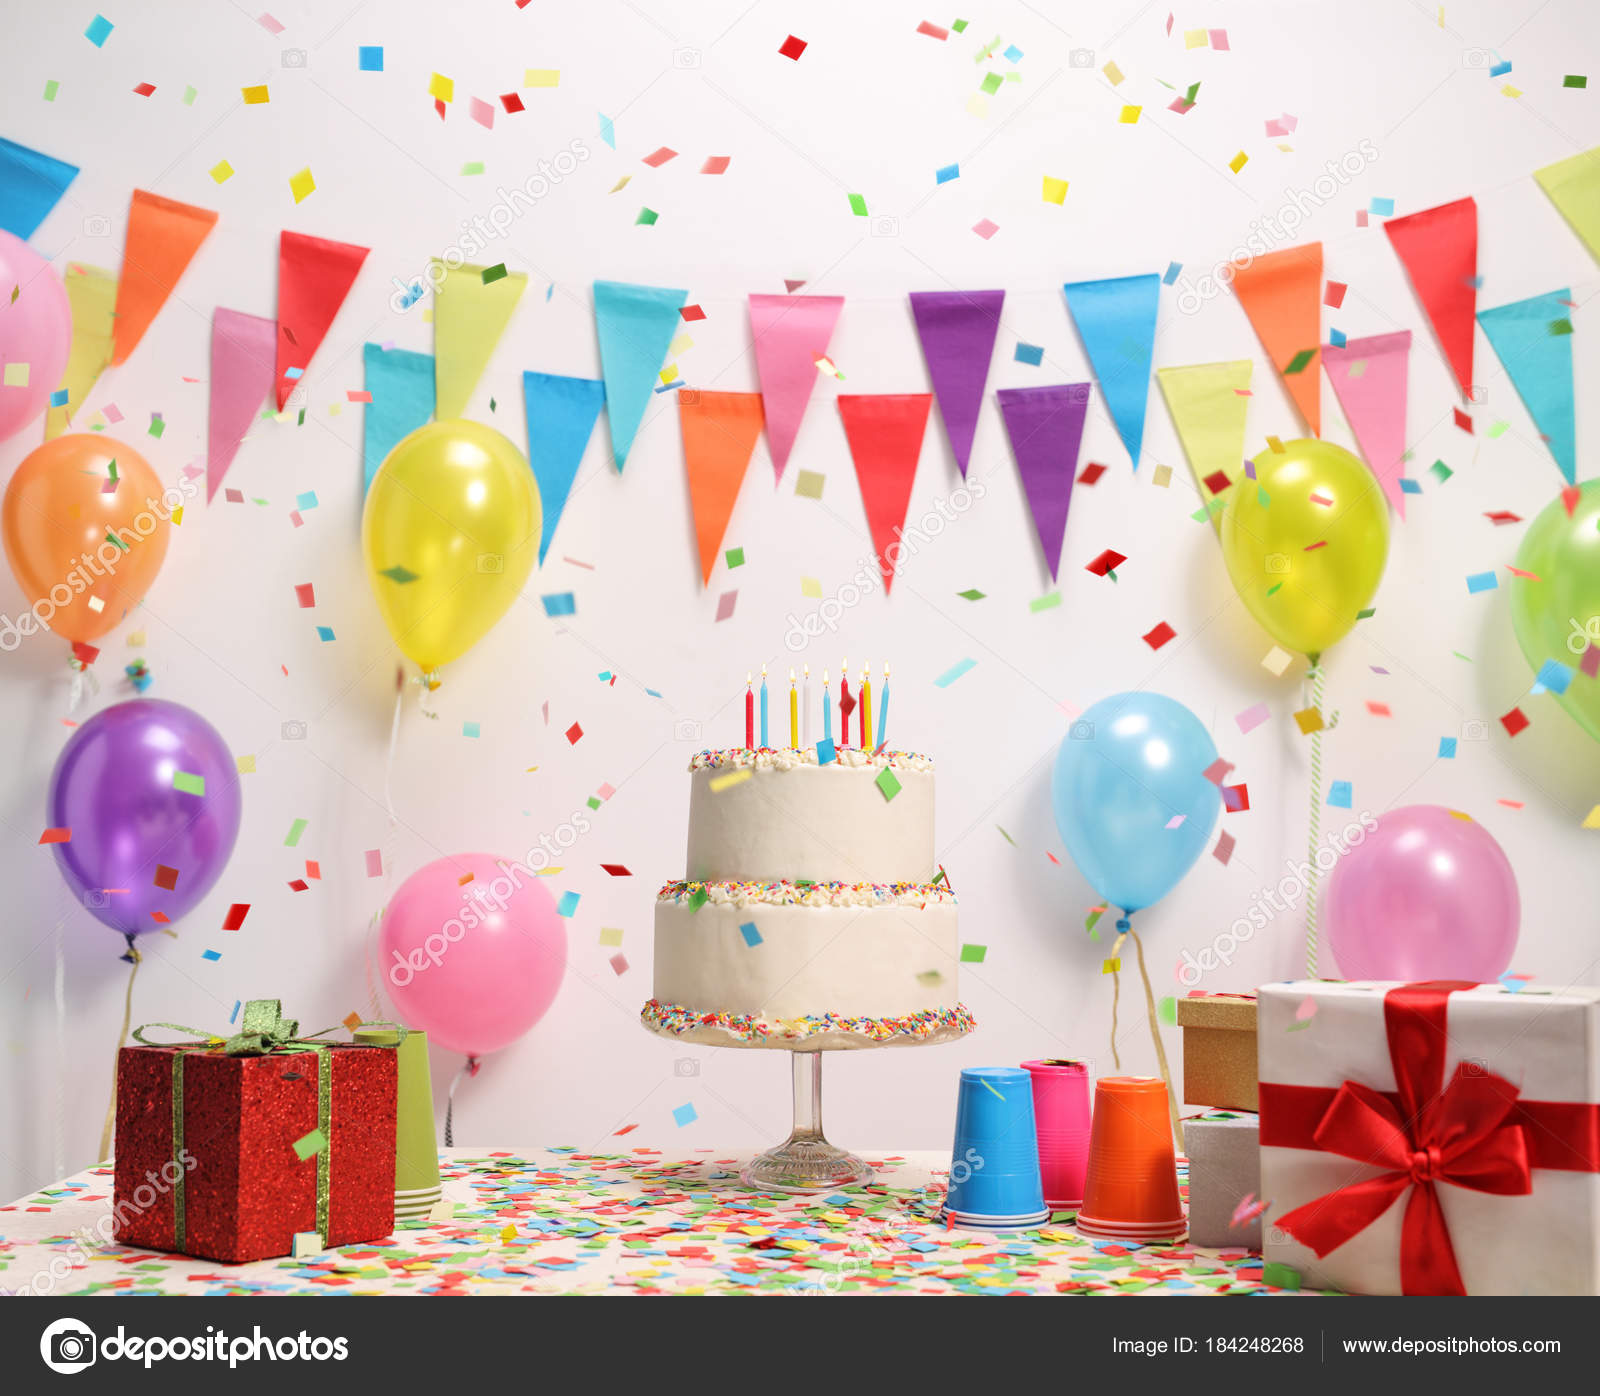 Birthday Cake On A Table Against Wall With Decoration Flags And Balloons Photo By Ljsphotography